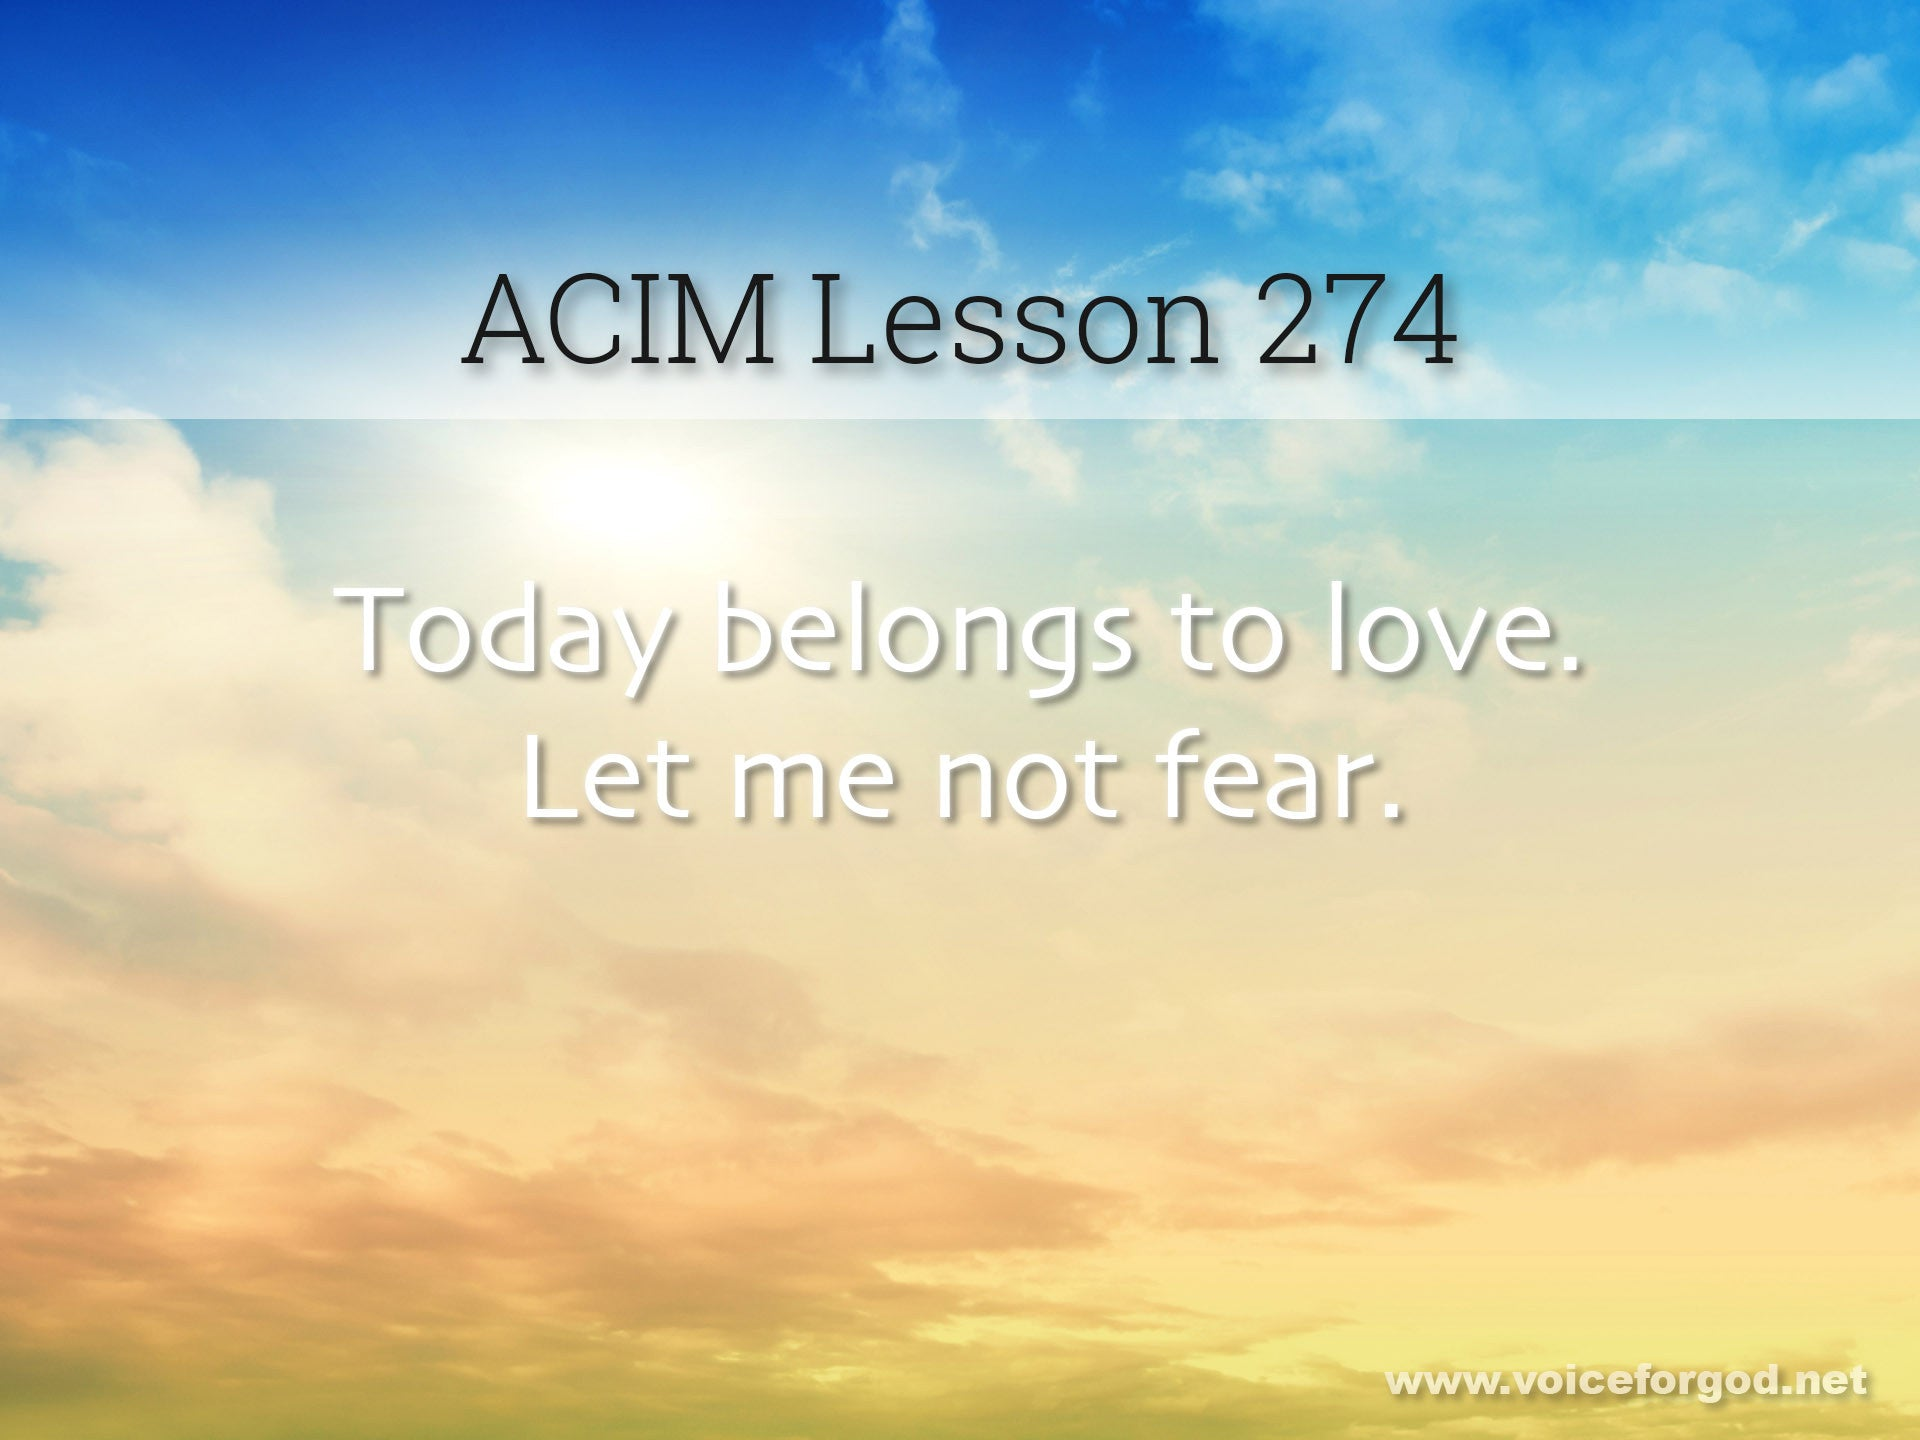 ACIM Lesson 274 - A Course in Miracles Workbook Lesson 274